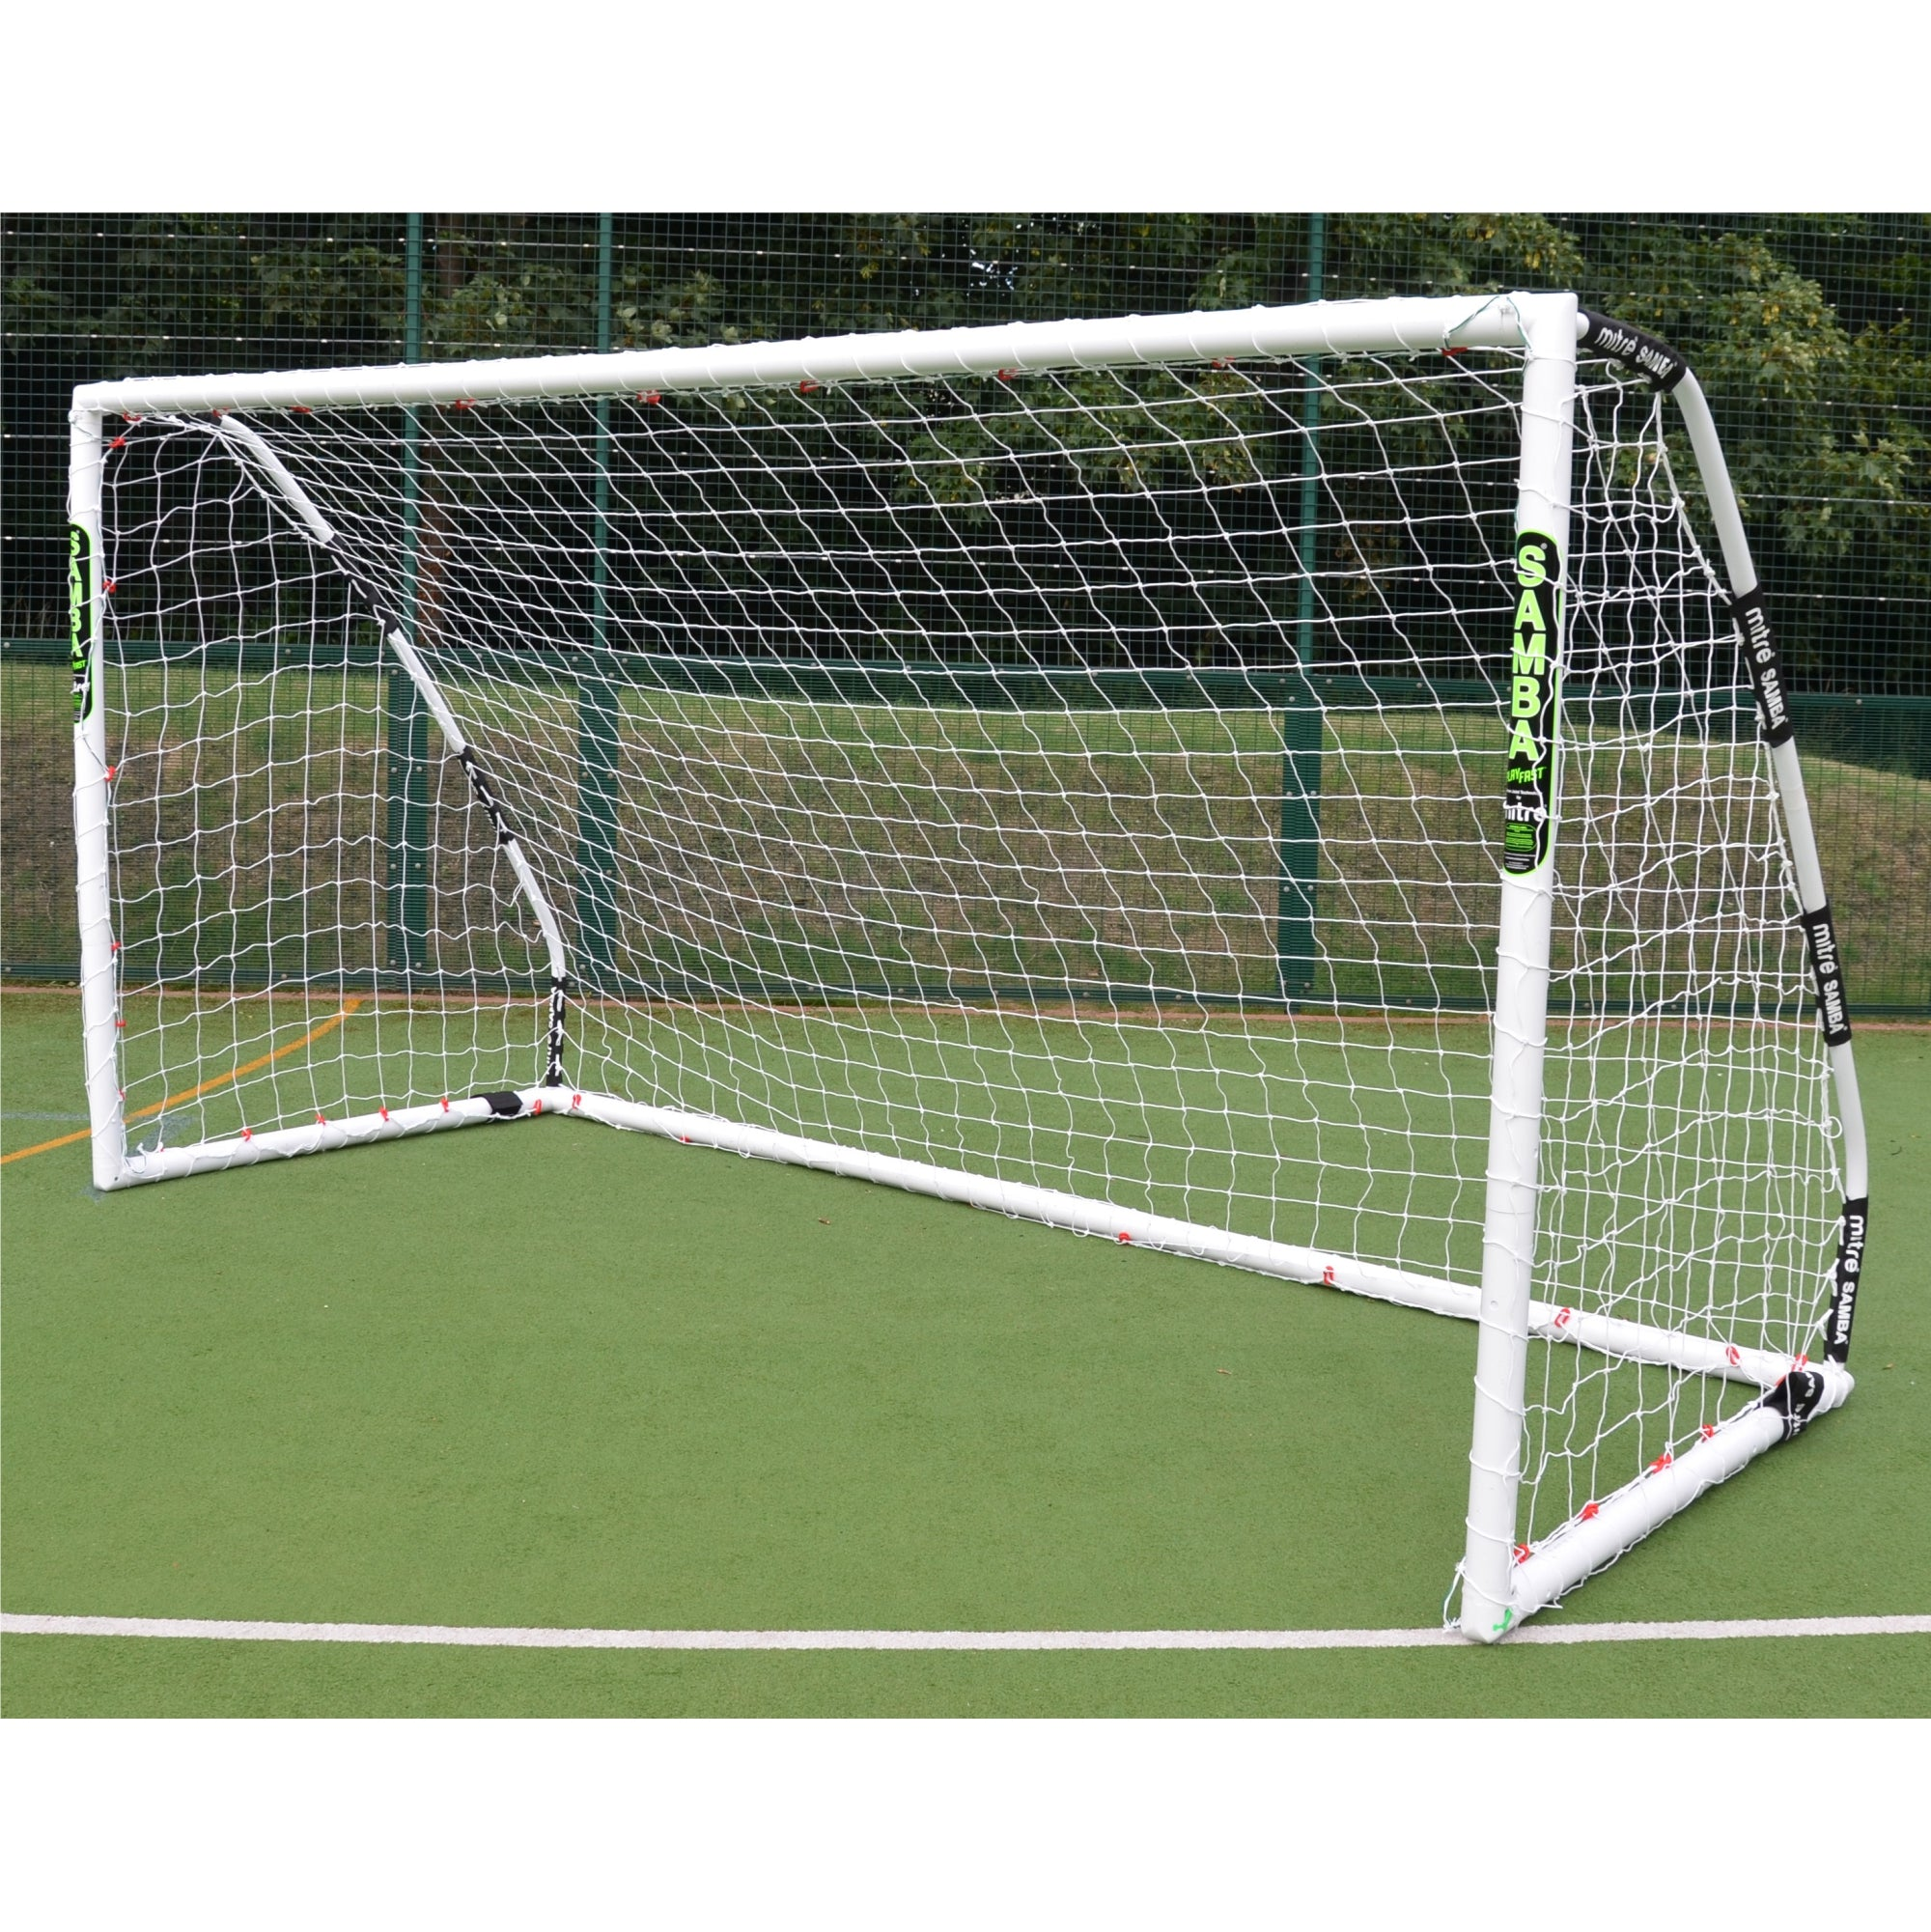 Samba Playfast 12x6 Playfast goal with folding corners